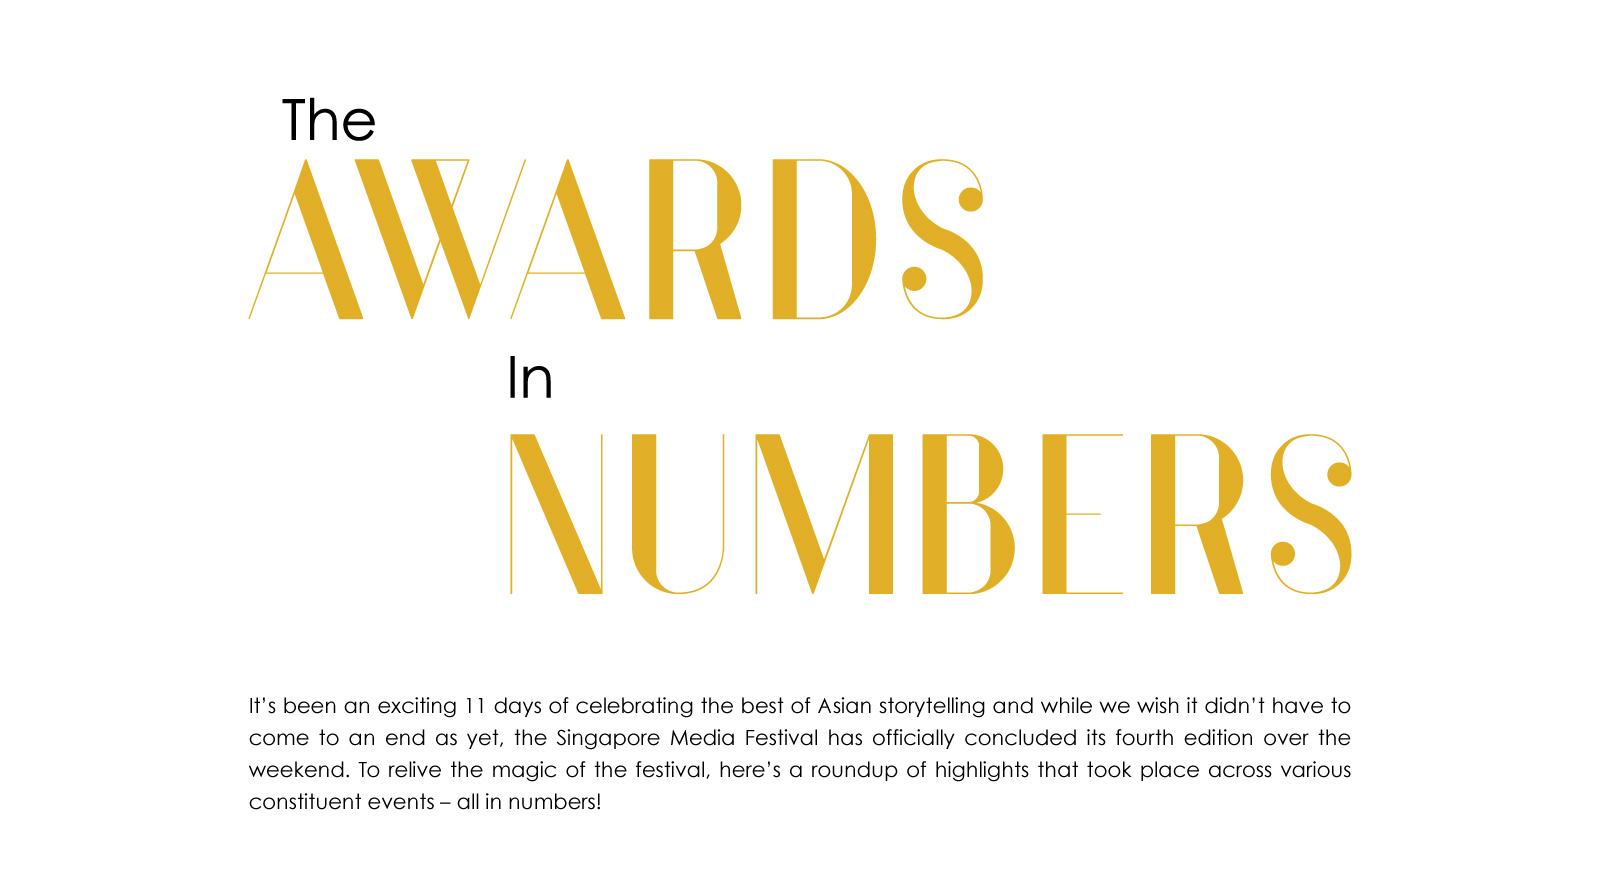 Awards-in-Numbers_01